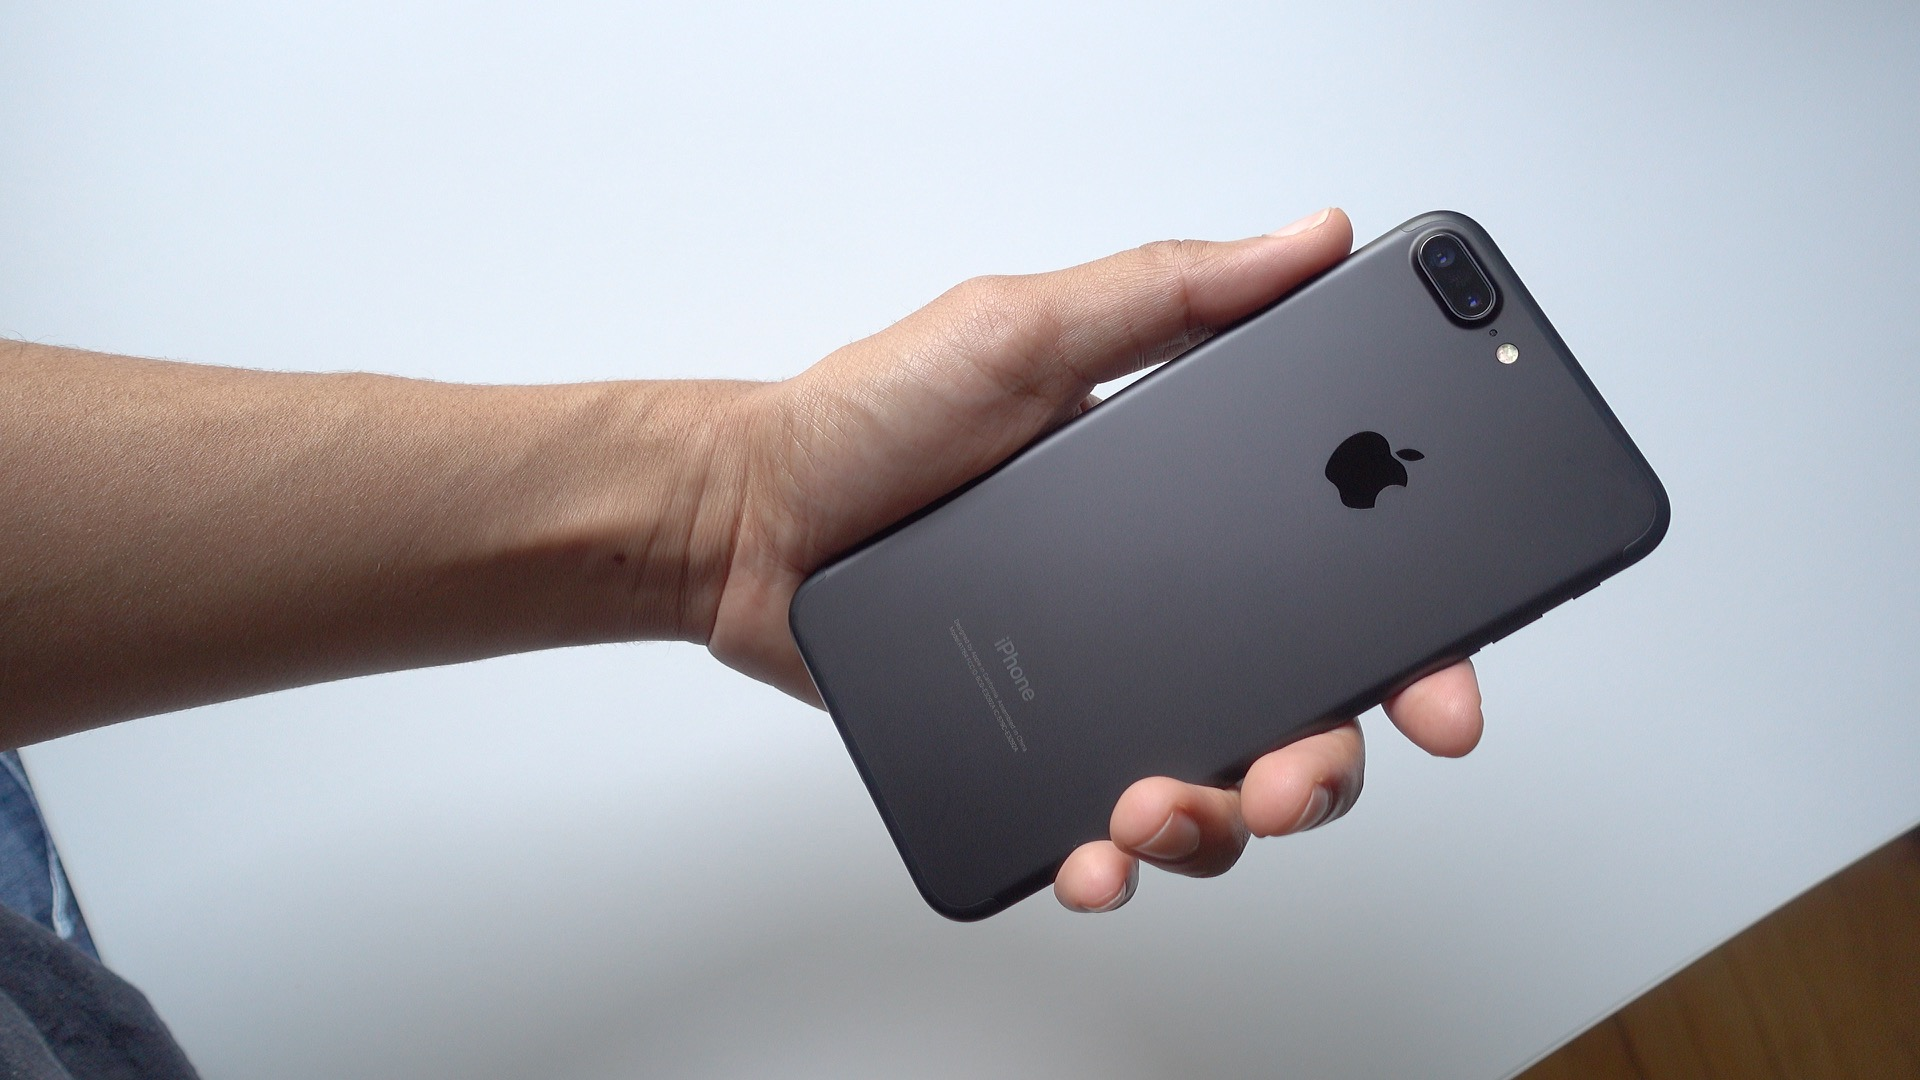 Iphone Xs Iphone Xr Iphone 8 And Iphone 7 Prices Specs And